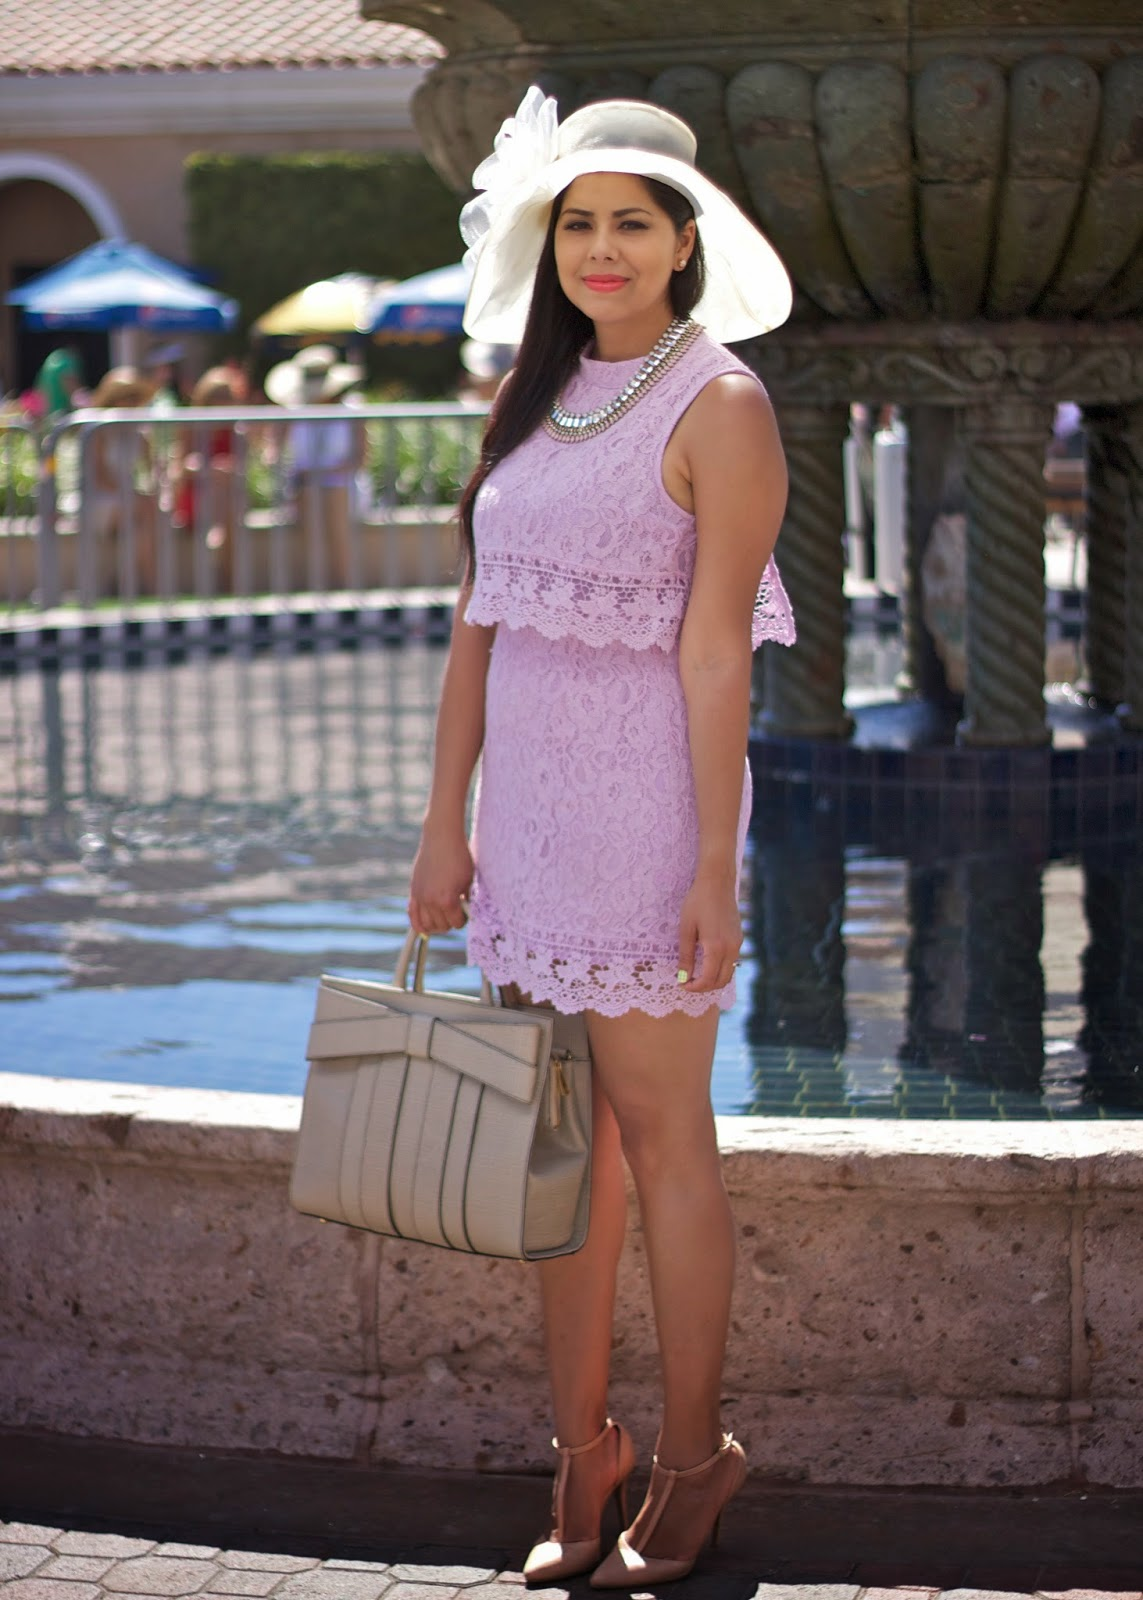 Del Mar Opening Day Fashion, San Diego del mar opening day fashion, kentucky derby fashion, big hat fashion